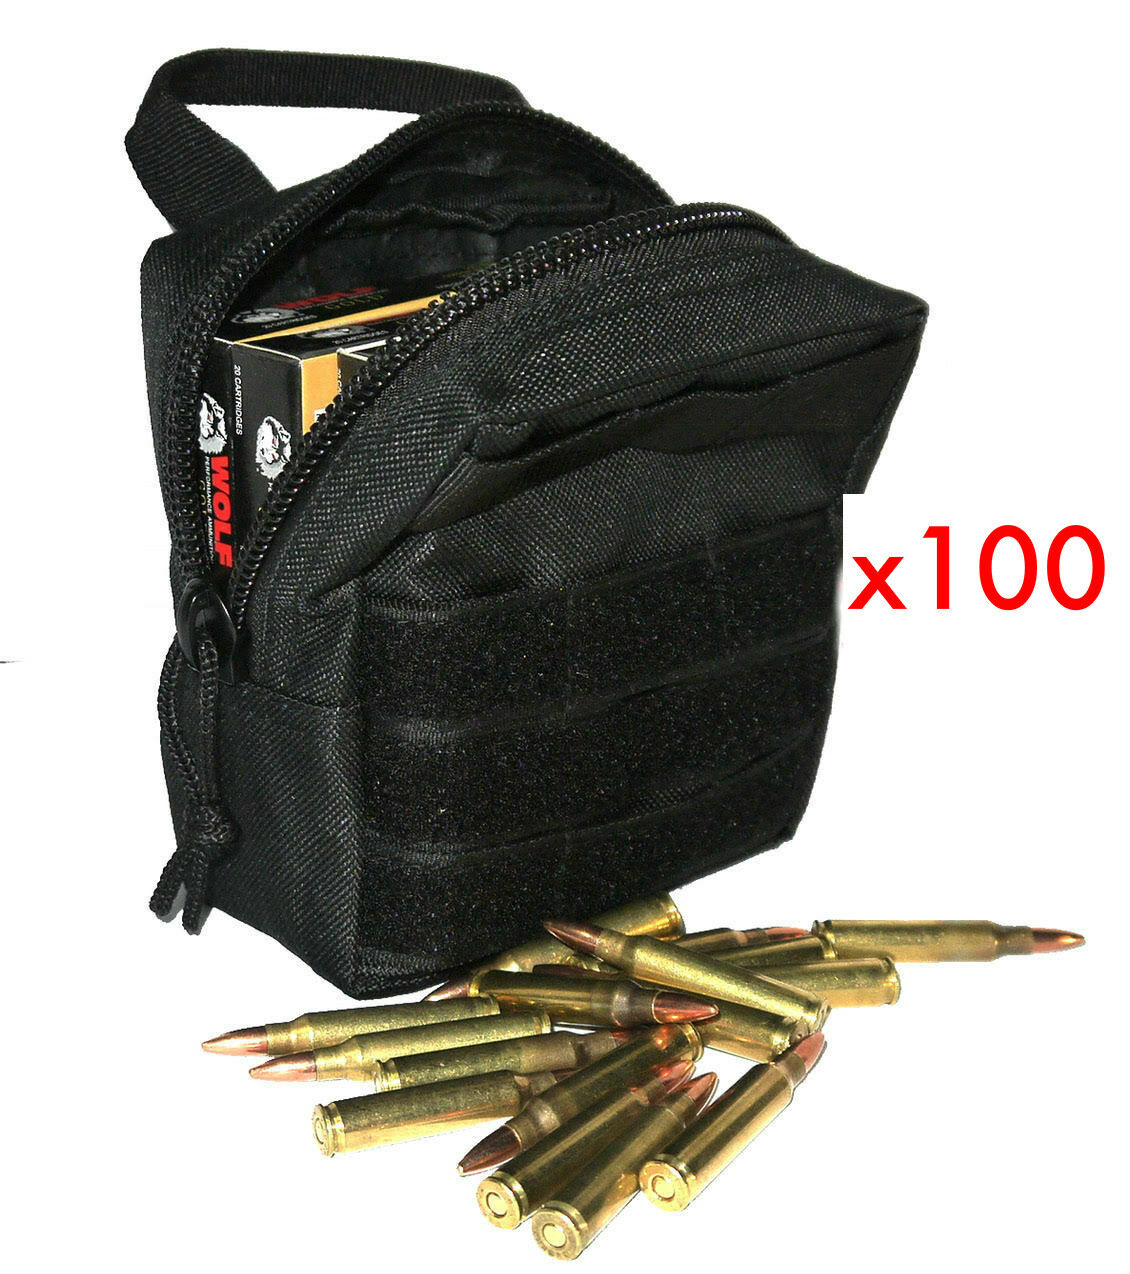 100) RIFFLE AMMUNITION AMMO MODULAR MOLLE UTILITY POUCHES FRONT HOOK LOOP STRAP